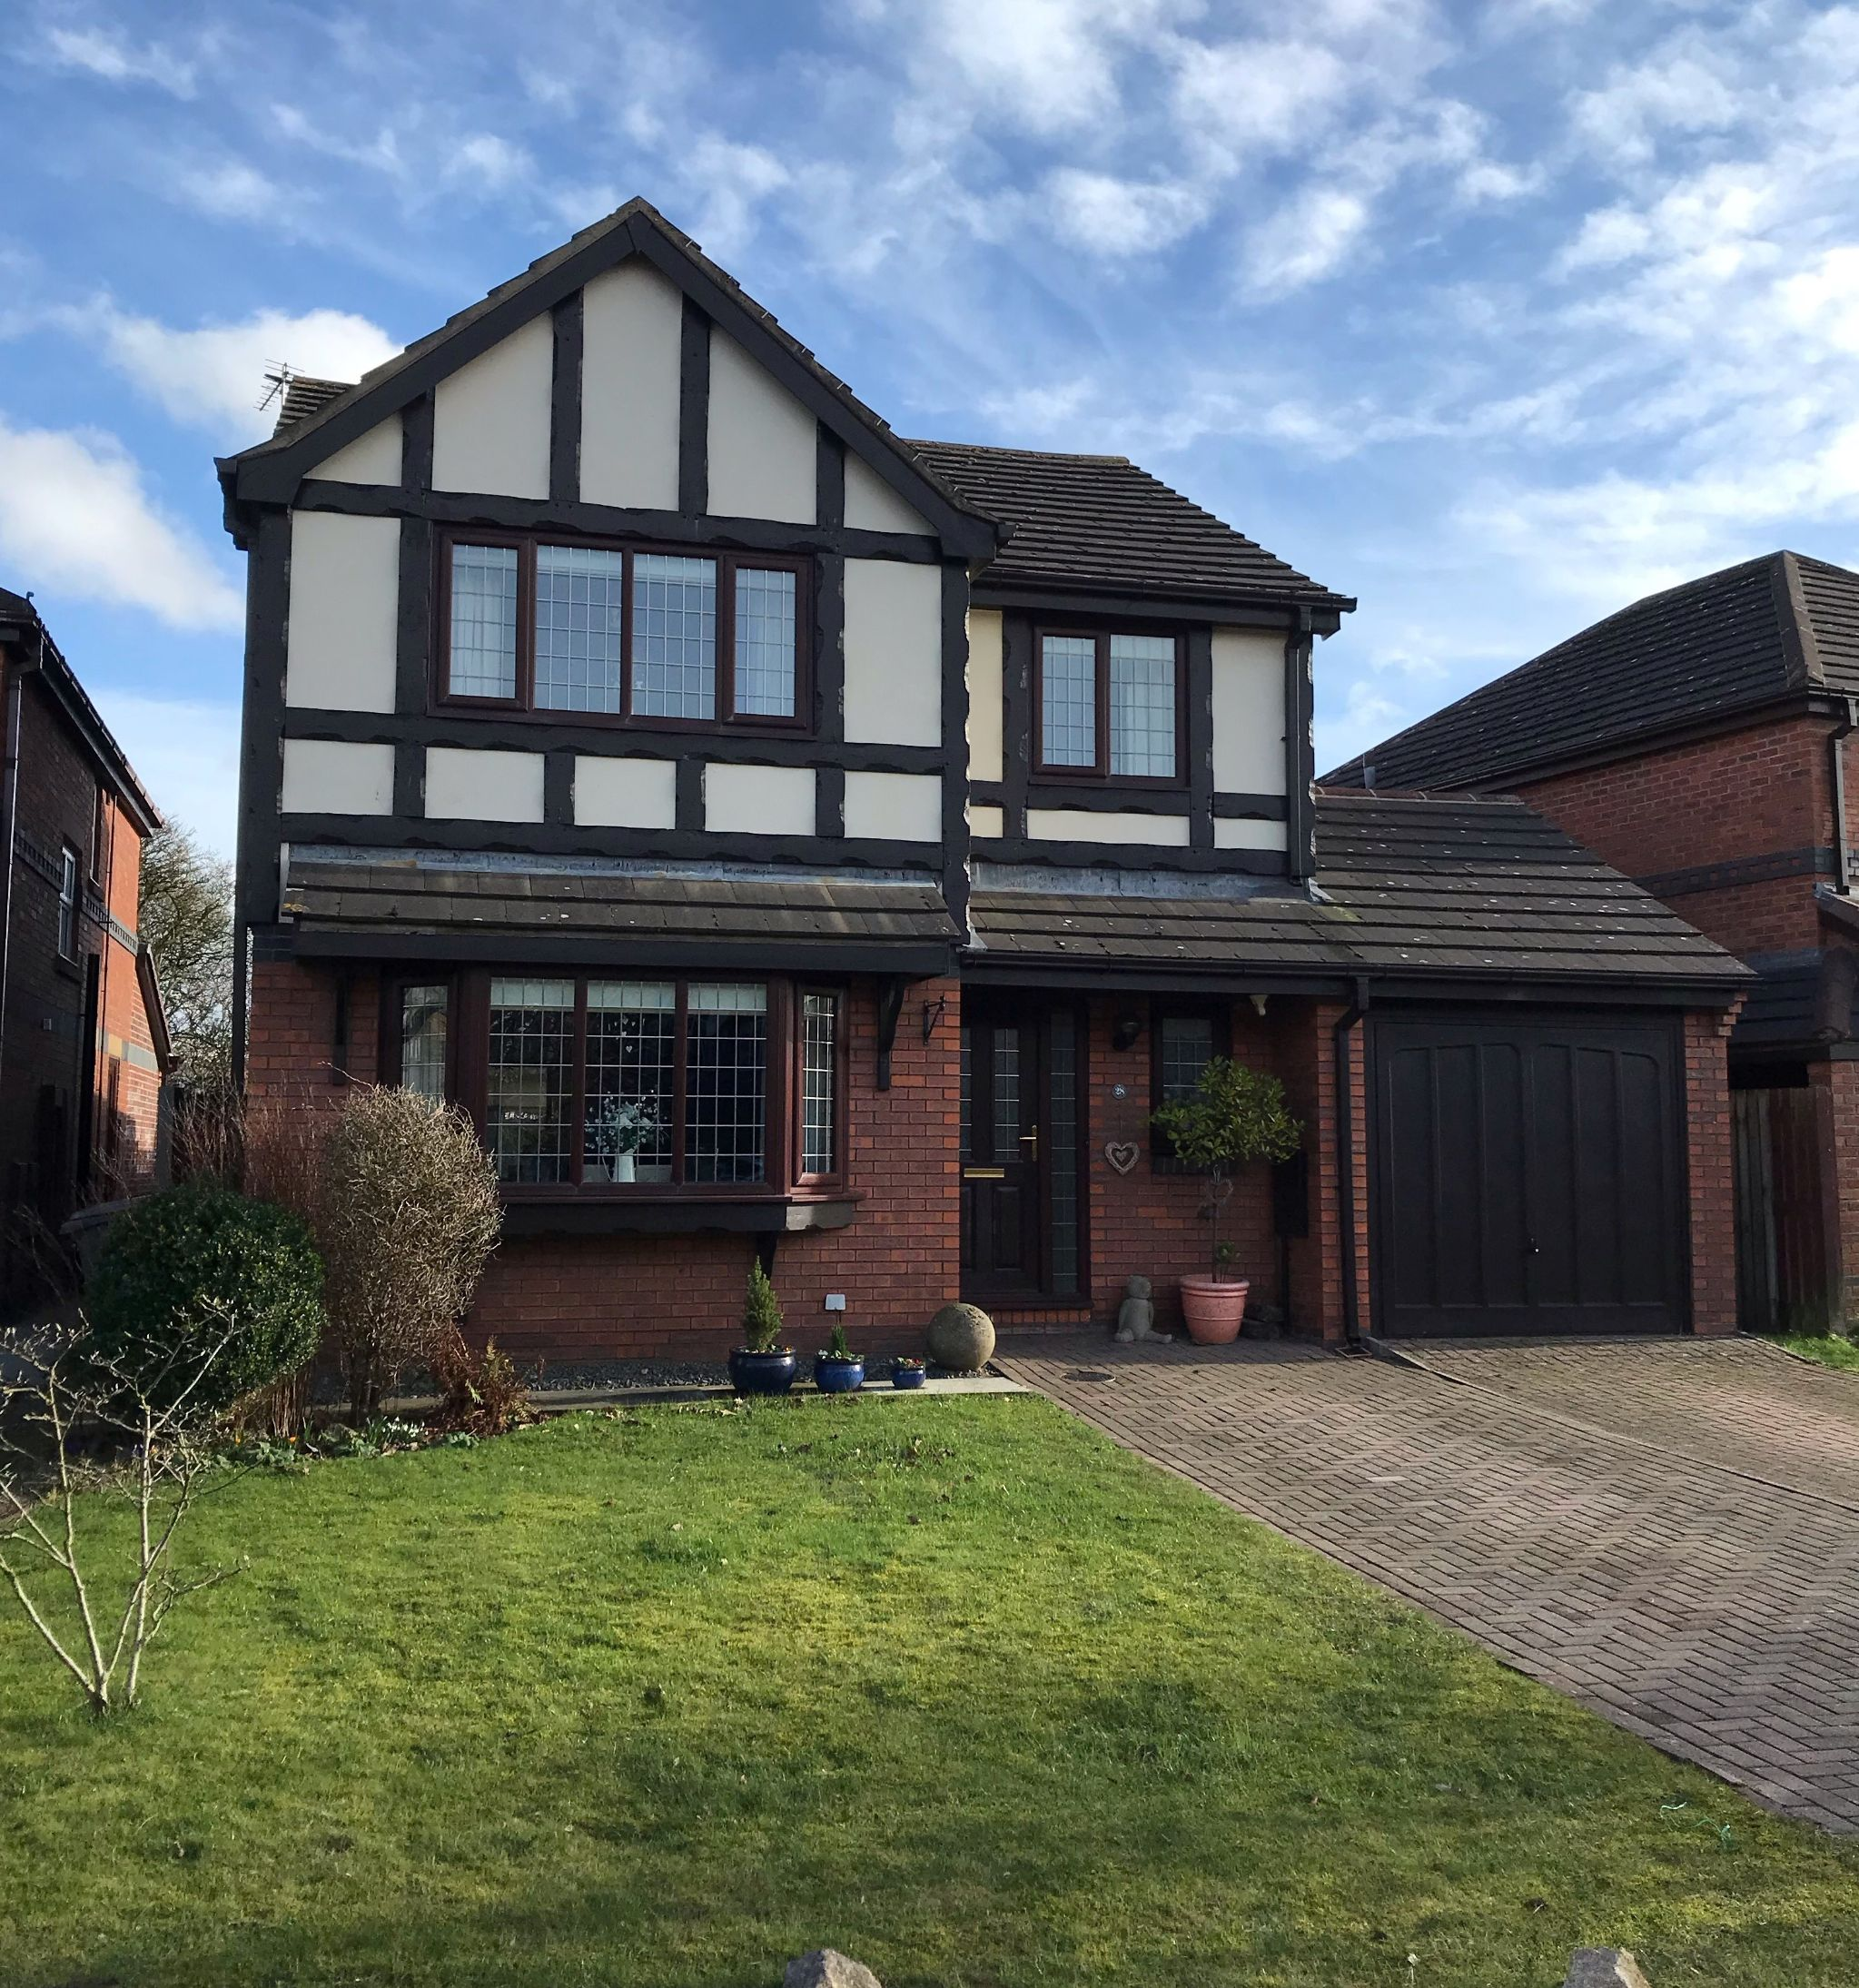 4 bedroom detached house Sold STC in Lytham St. Annes - Cheviot Avenue